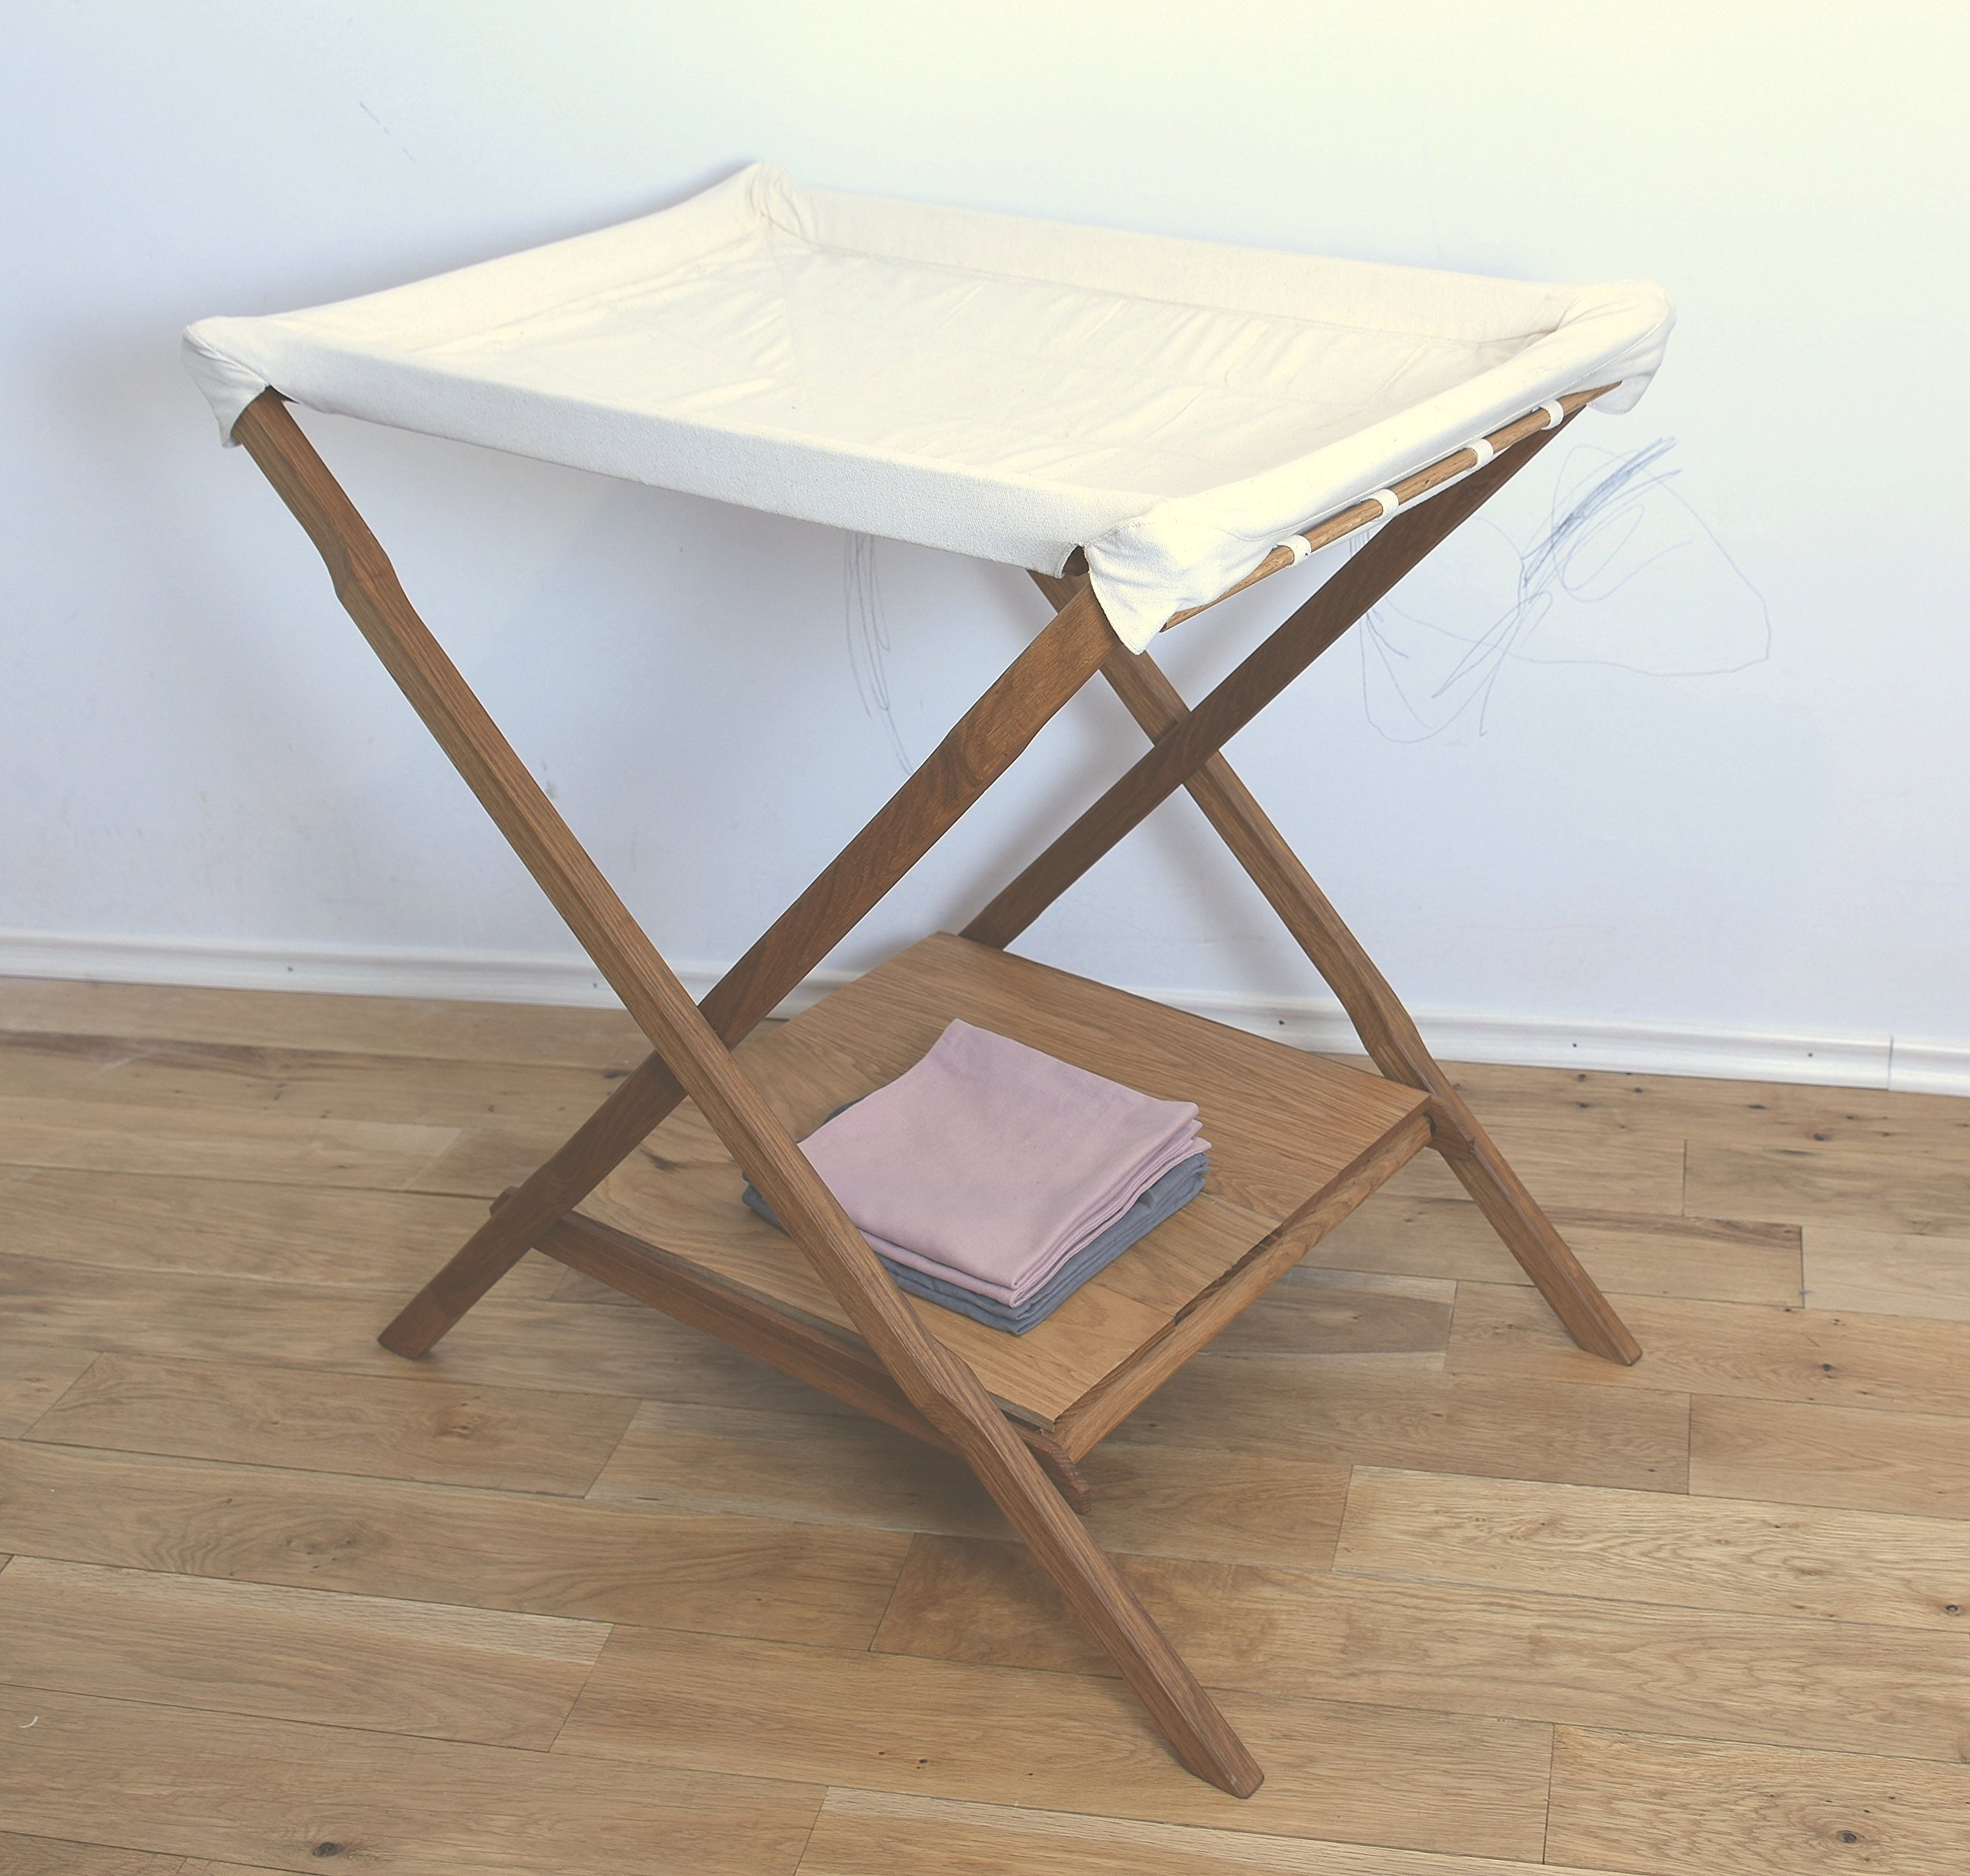 KOOTACARE Changing Table entirely of Oak Wood, Wool, Cotton and Linen fabric